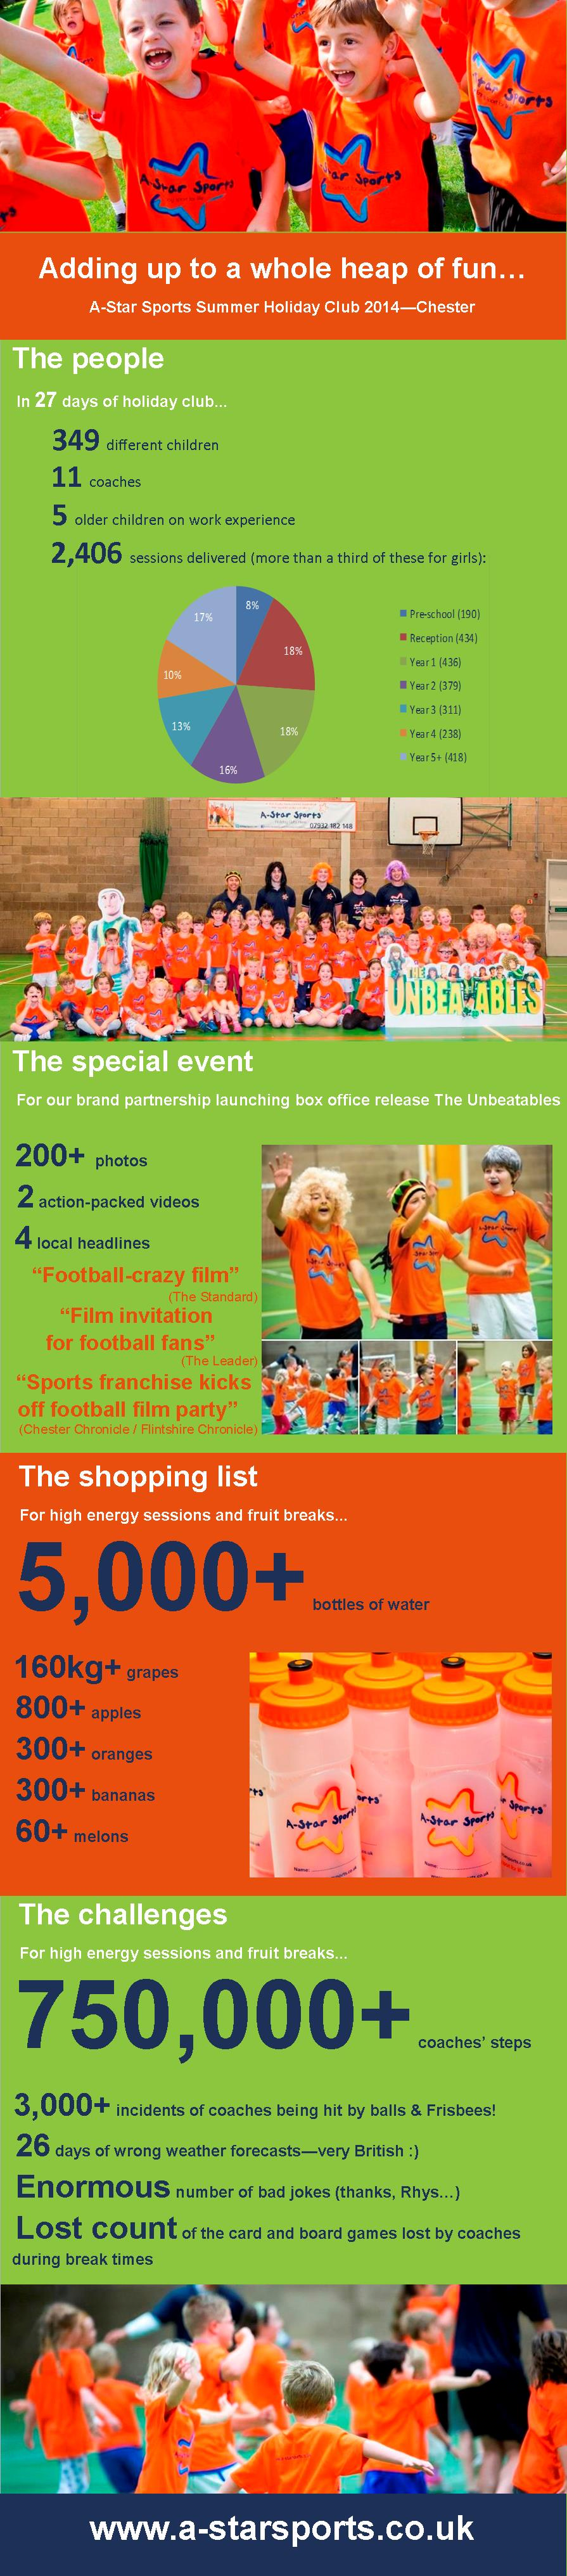 Infographic_final_A-Star Sports